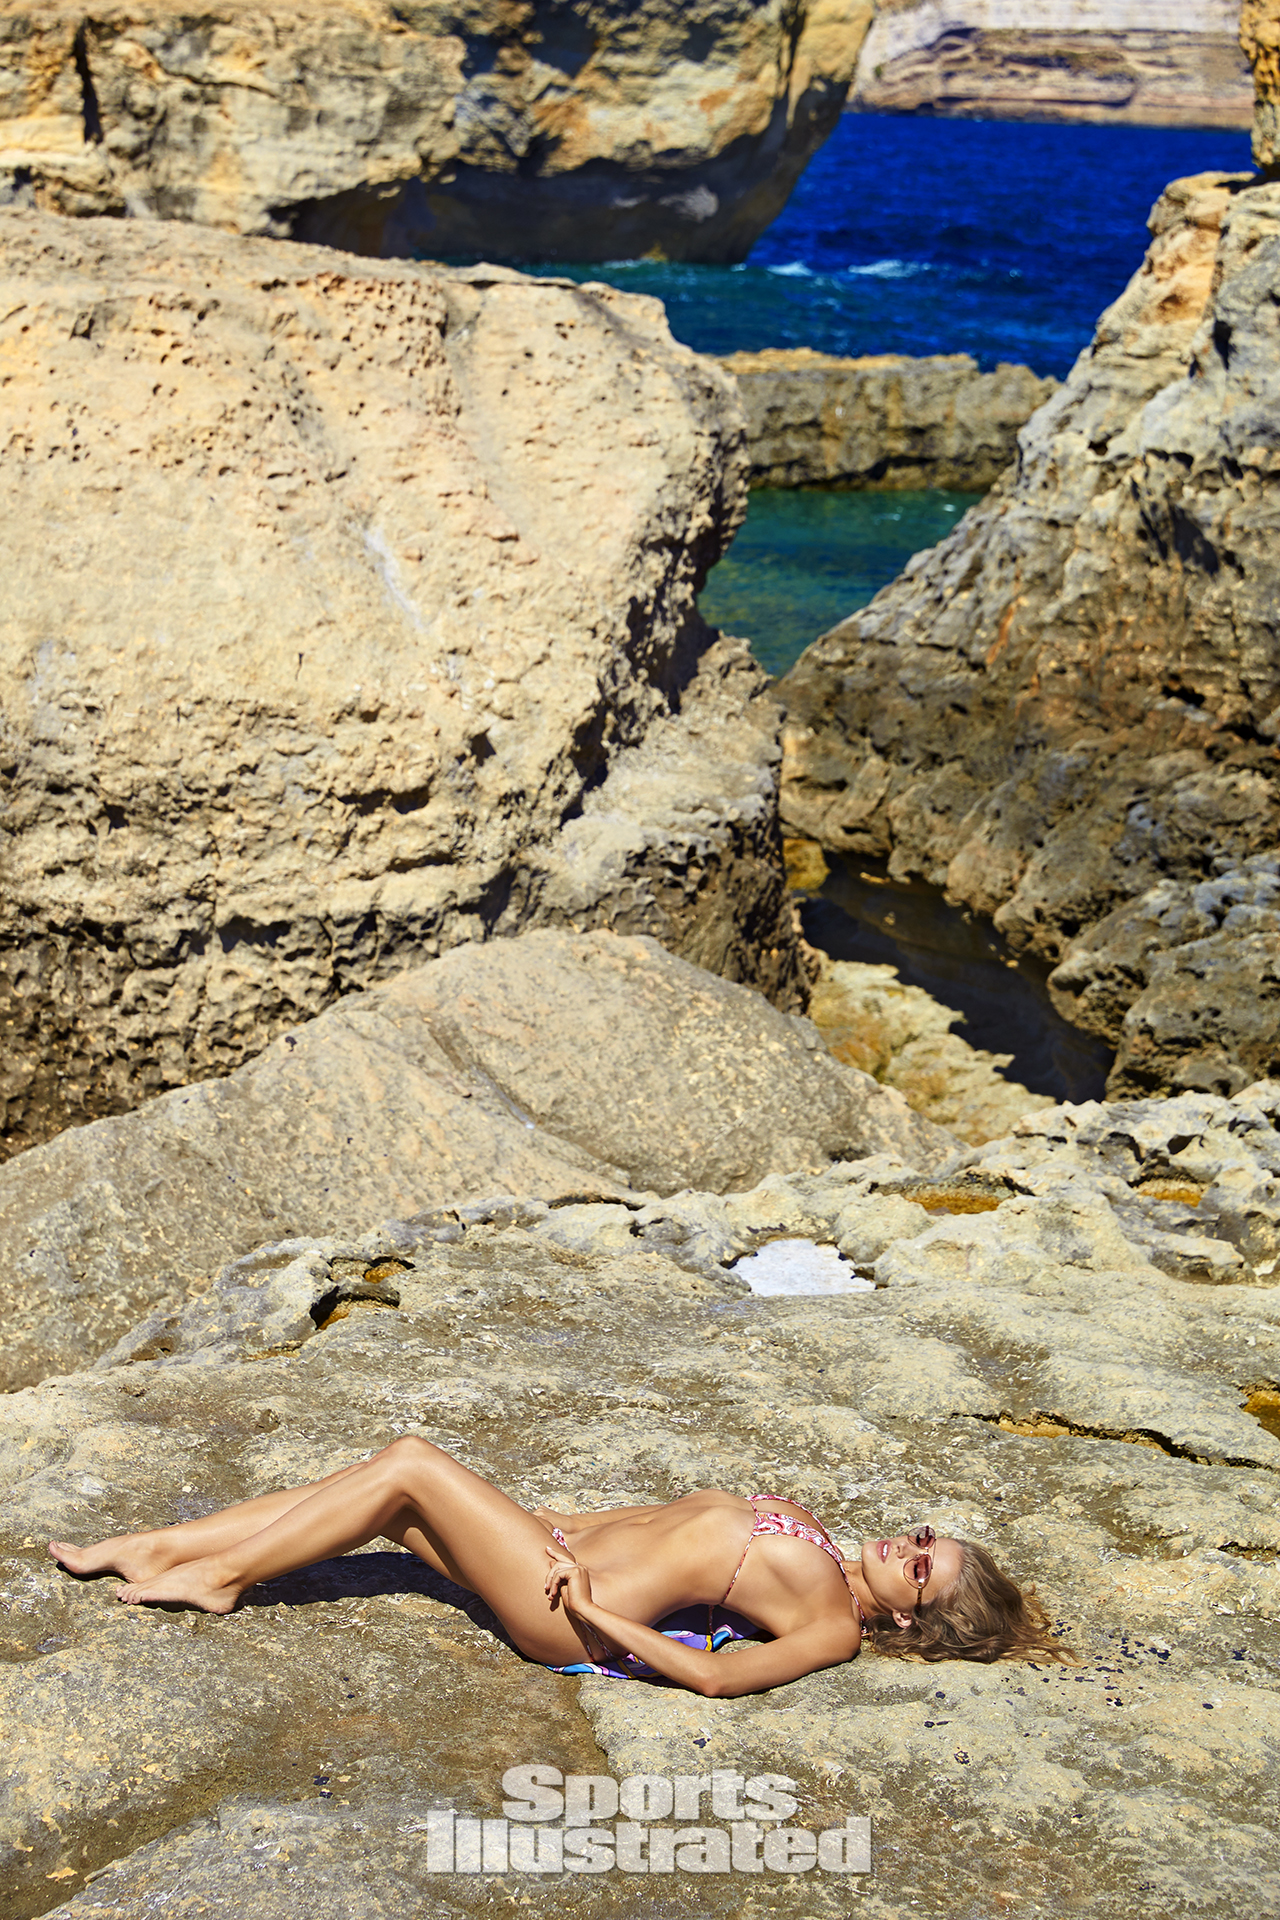 Tanya Mityushina was photographed by Ben Watts in Malta. Swimsuit by Toxic Sadie Swimwear.